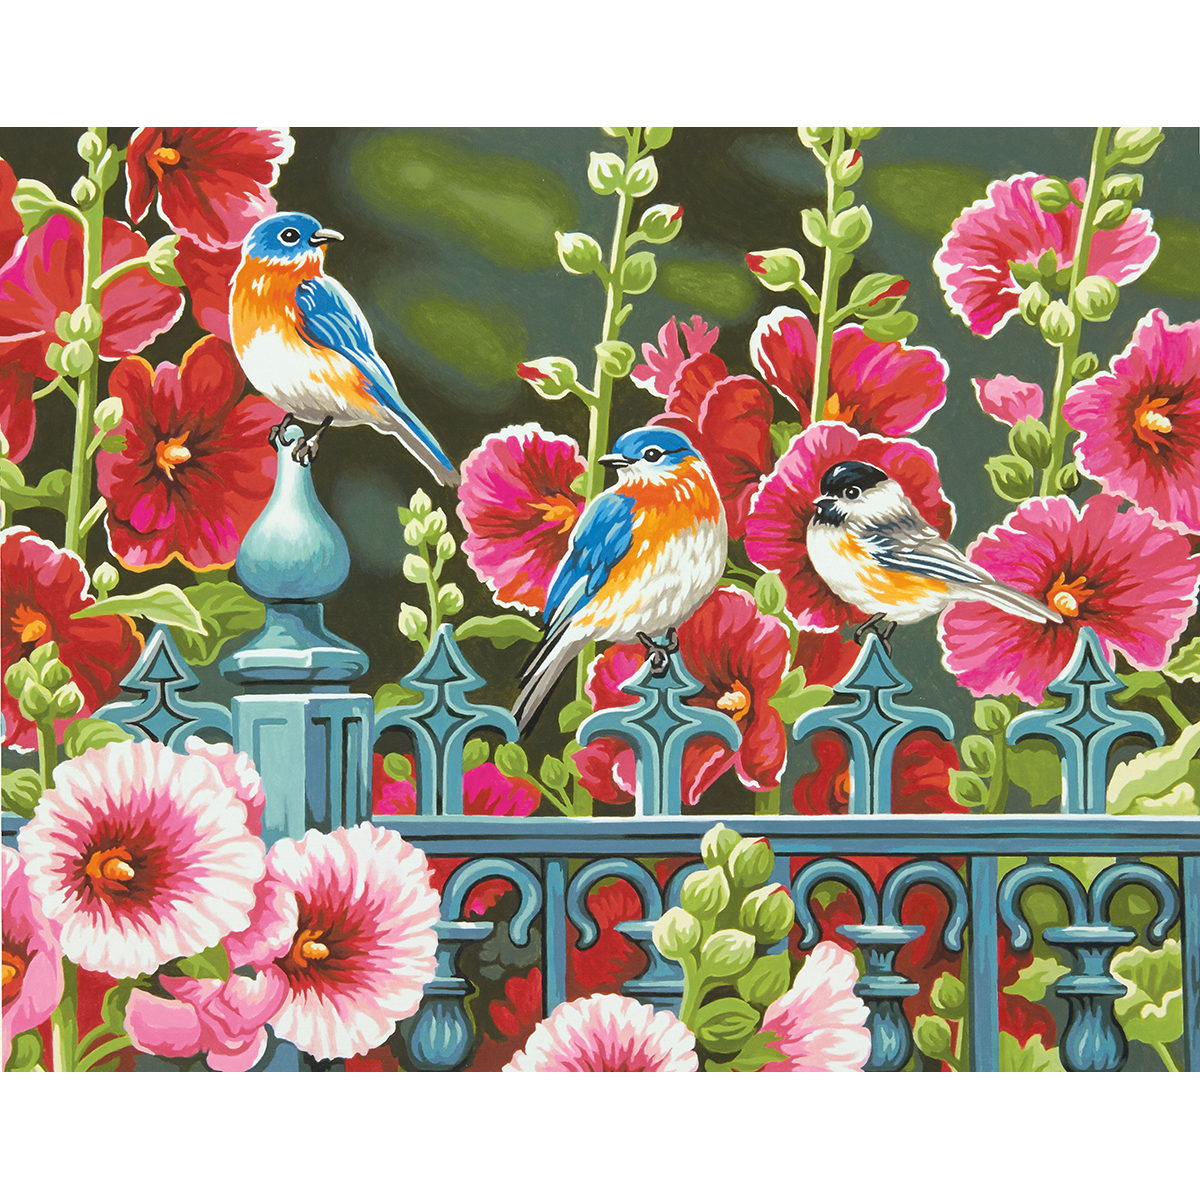 Paint Works Paint By Number Kit 14X11-Hollyhock Gate